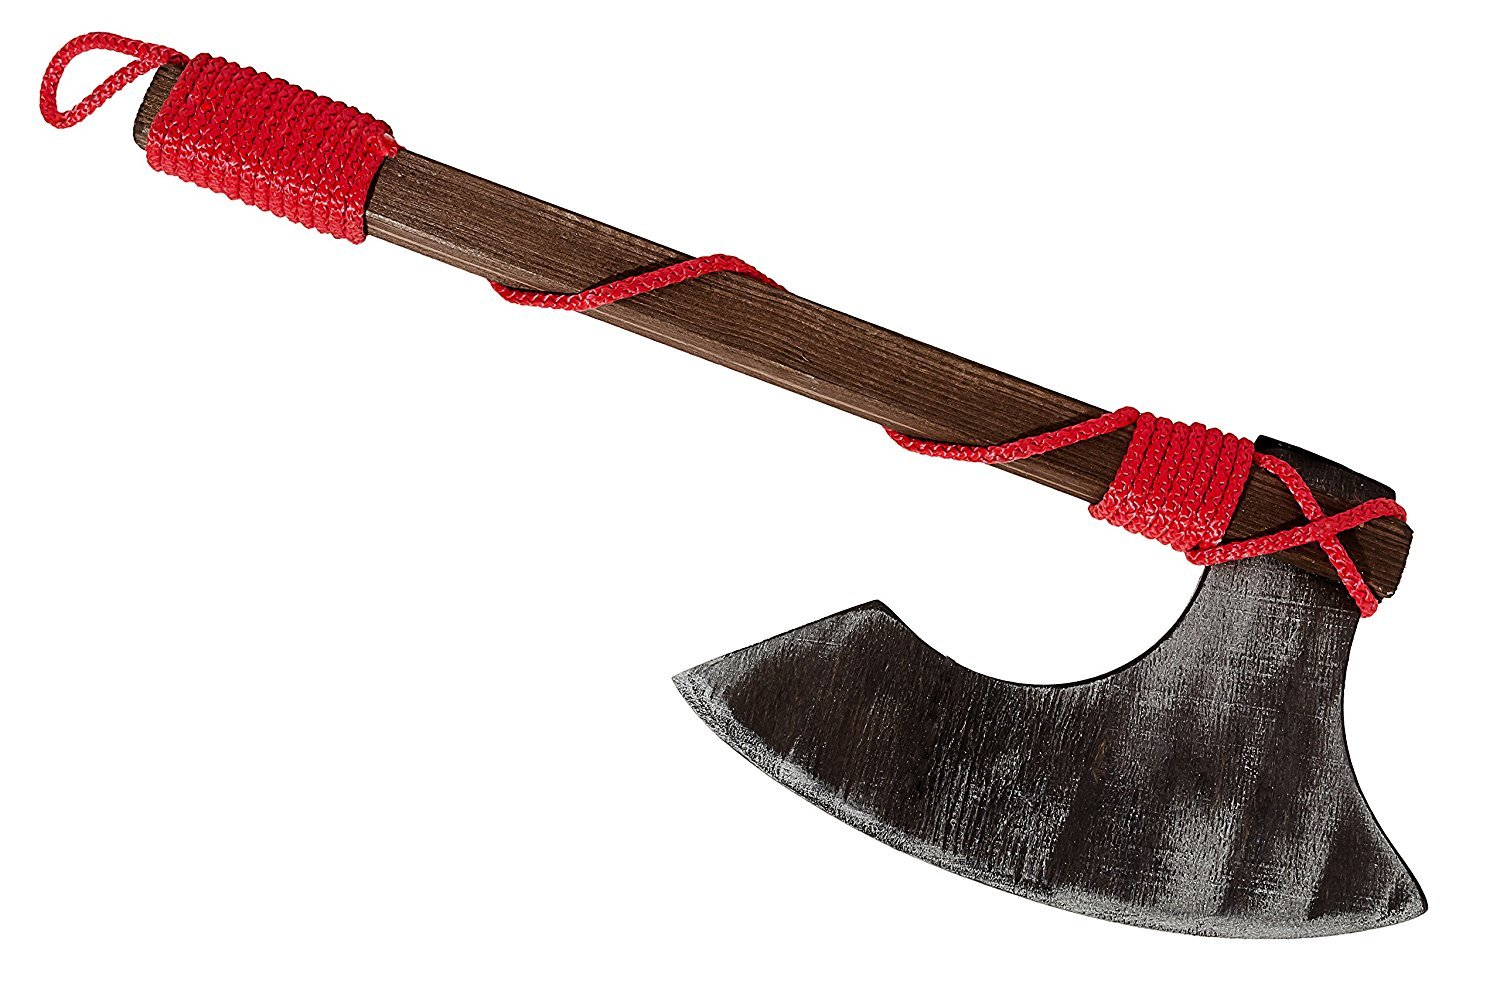 Small VIKING'S AXE 43cm / 17in Wooden Toy for Kids / Children - Dark Master of Trading W003A